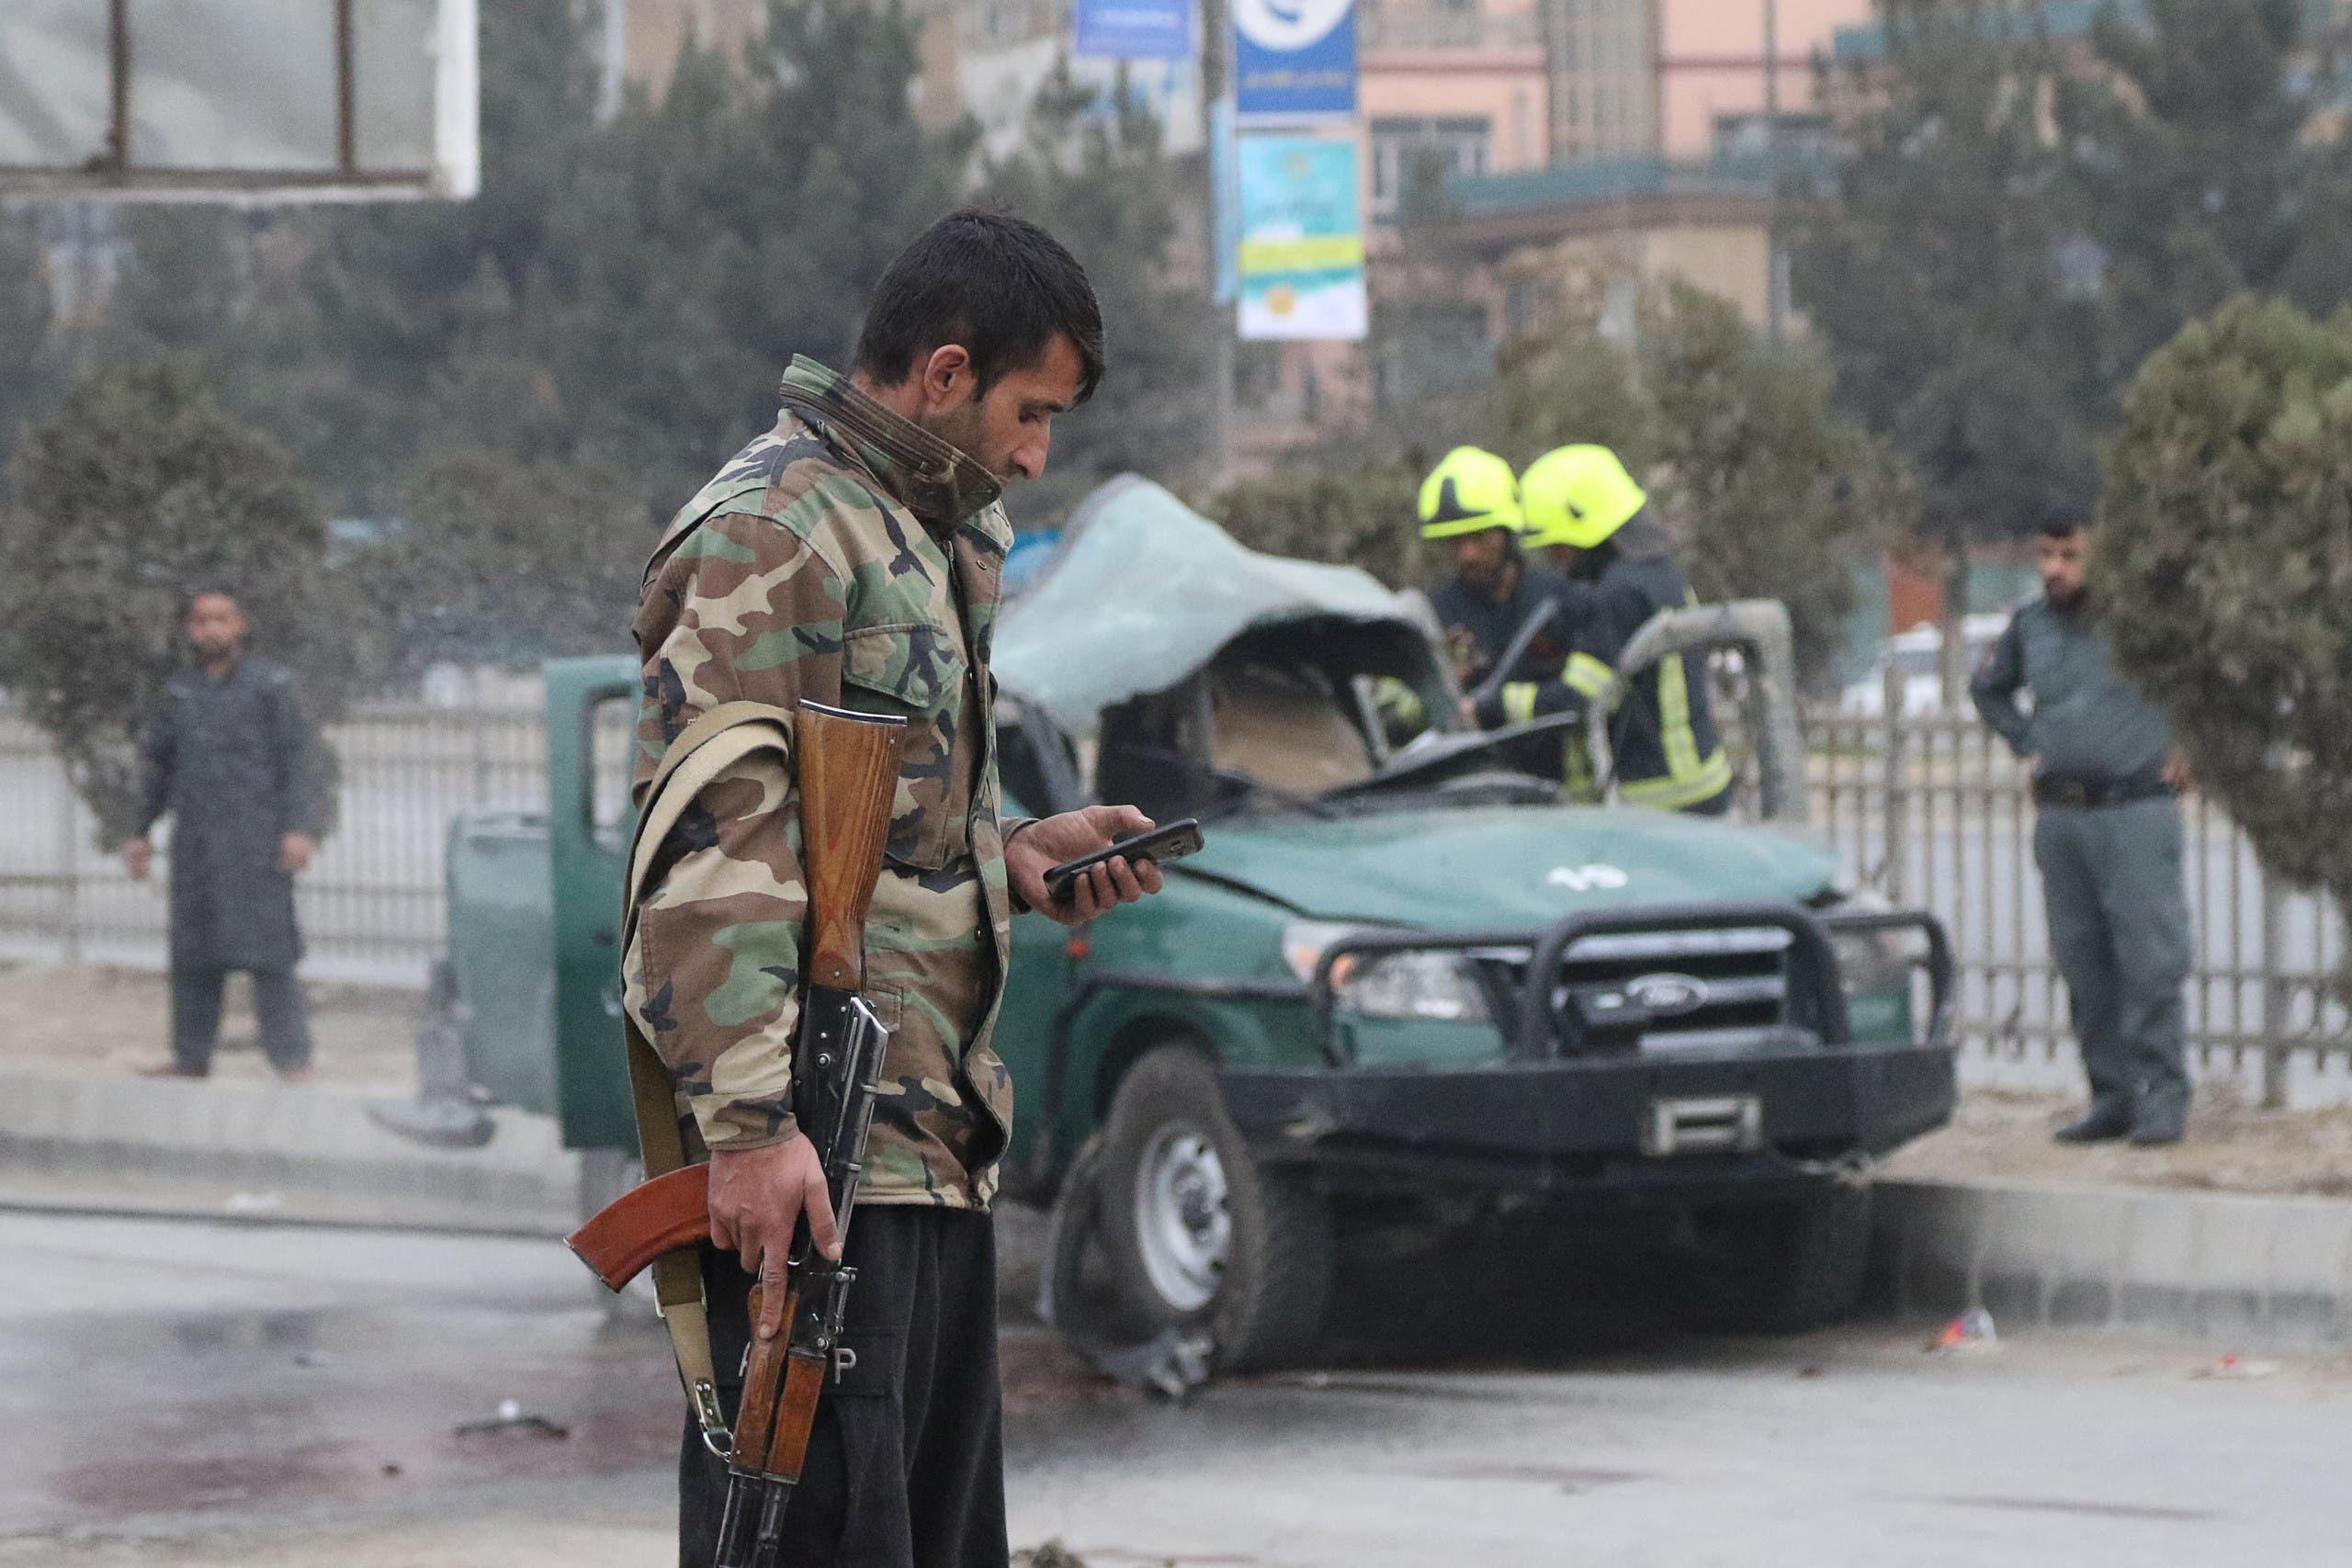 Policemen arrive at a site of a bomb blast which killed at least two people and injured five others, in Kabul on February 21, 2021. (File photo: AFP)